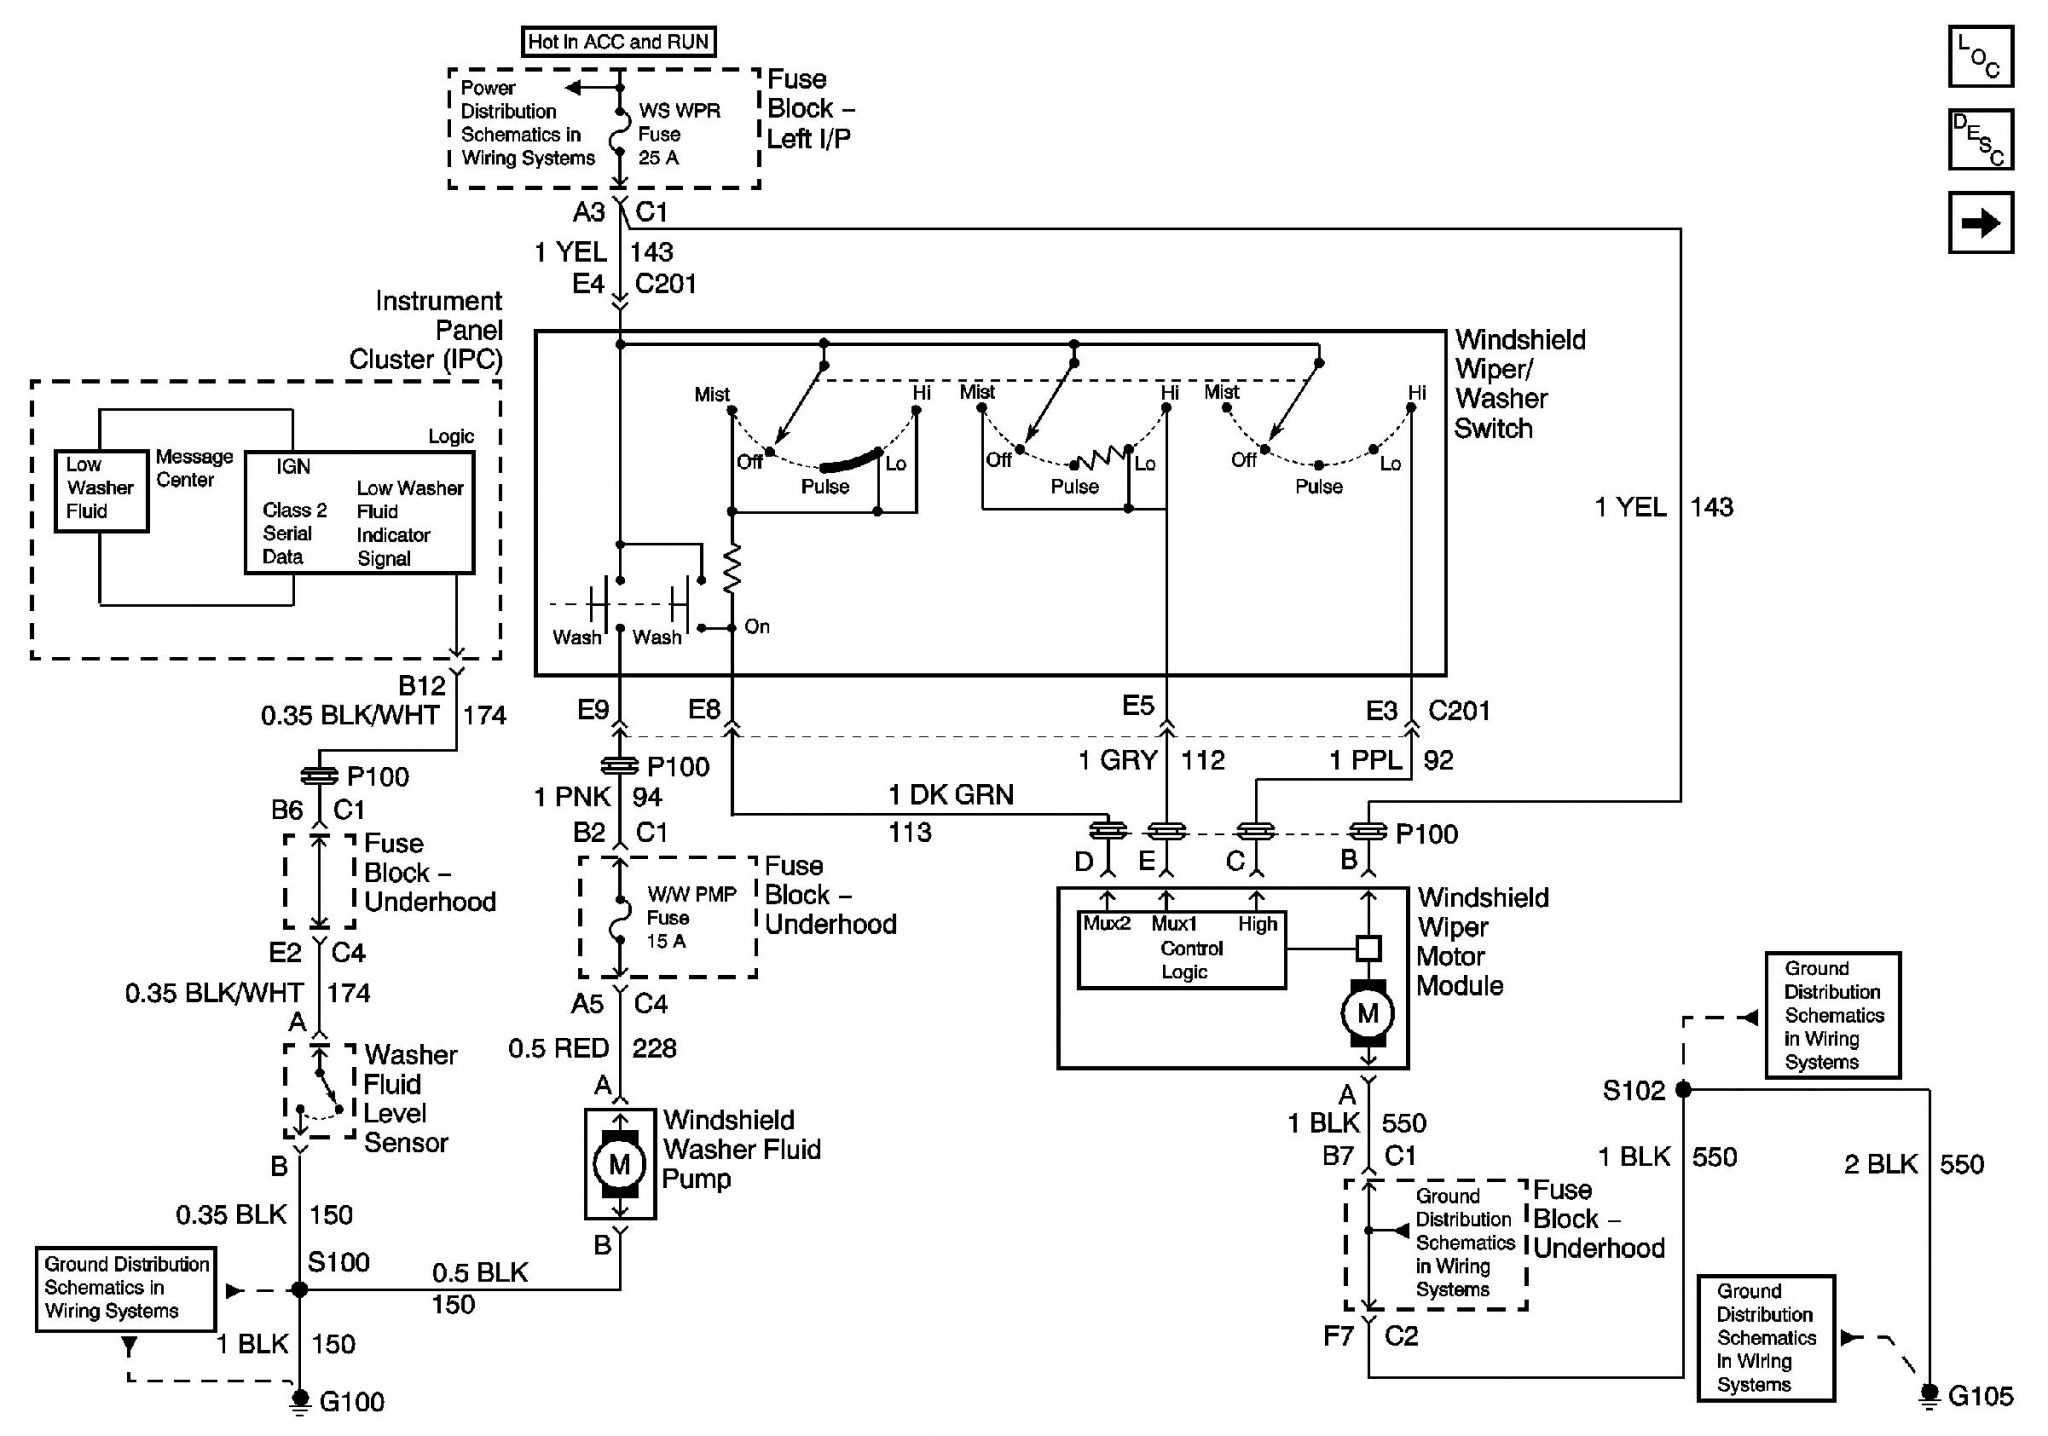 Windshield Wiper Washer Related 2002 Tahoe Fuse Box Schematic Click Pic To Expand It